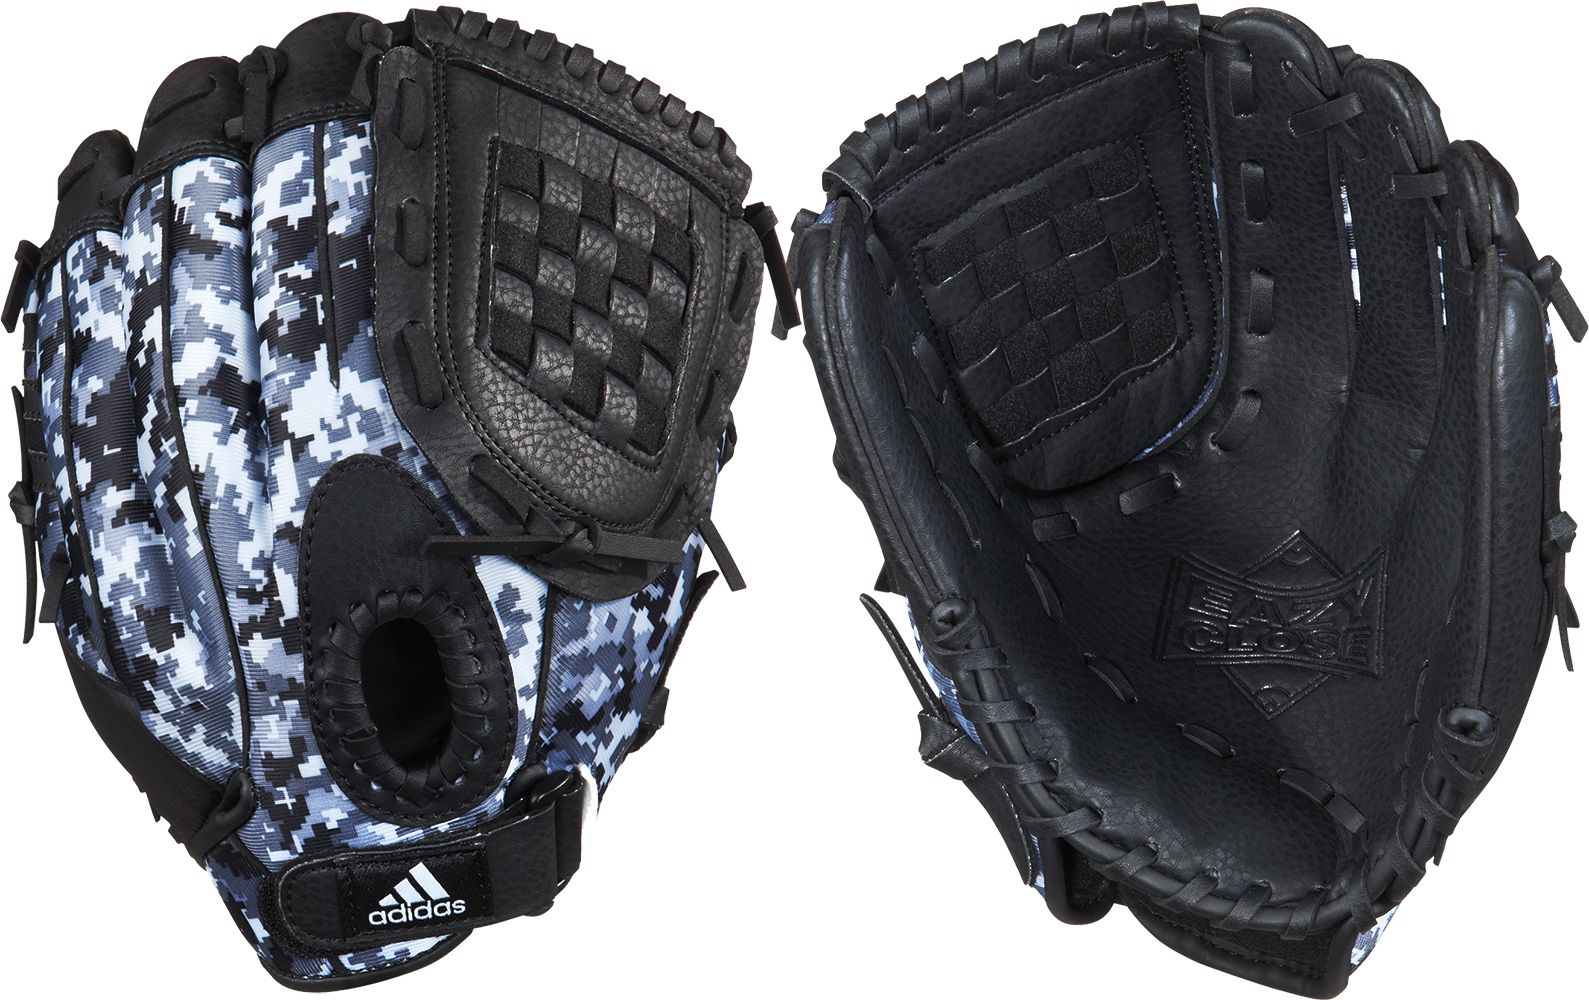 Iz2 dress mail order_bu 0 - Product Image Adidas 10 T Ball Digi Camo Triple Stripe Series Glove